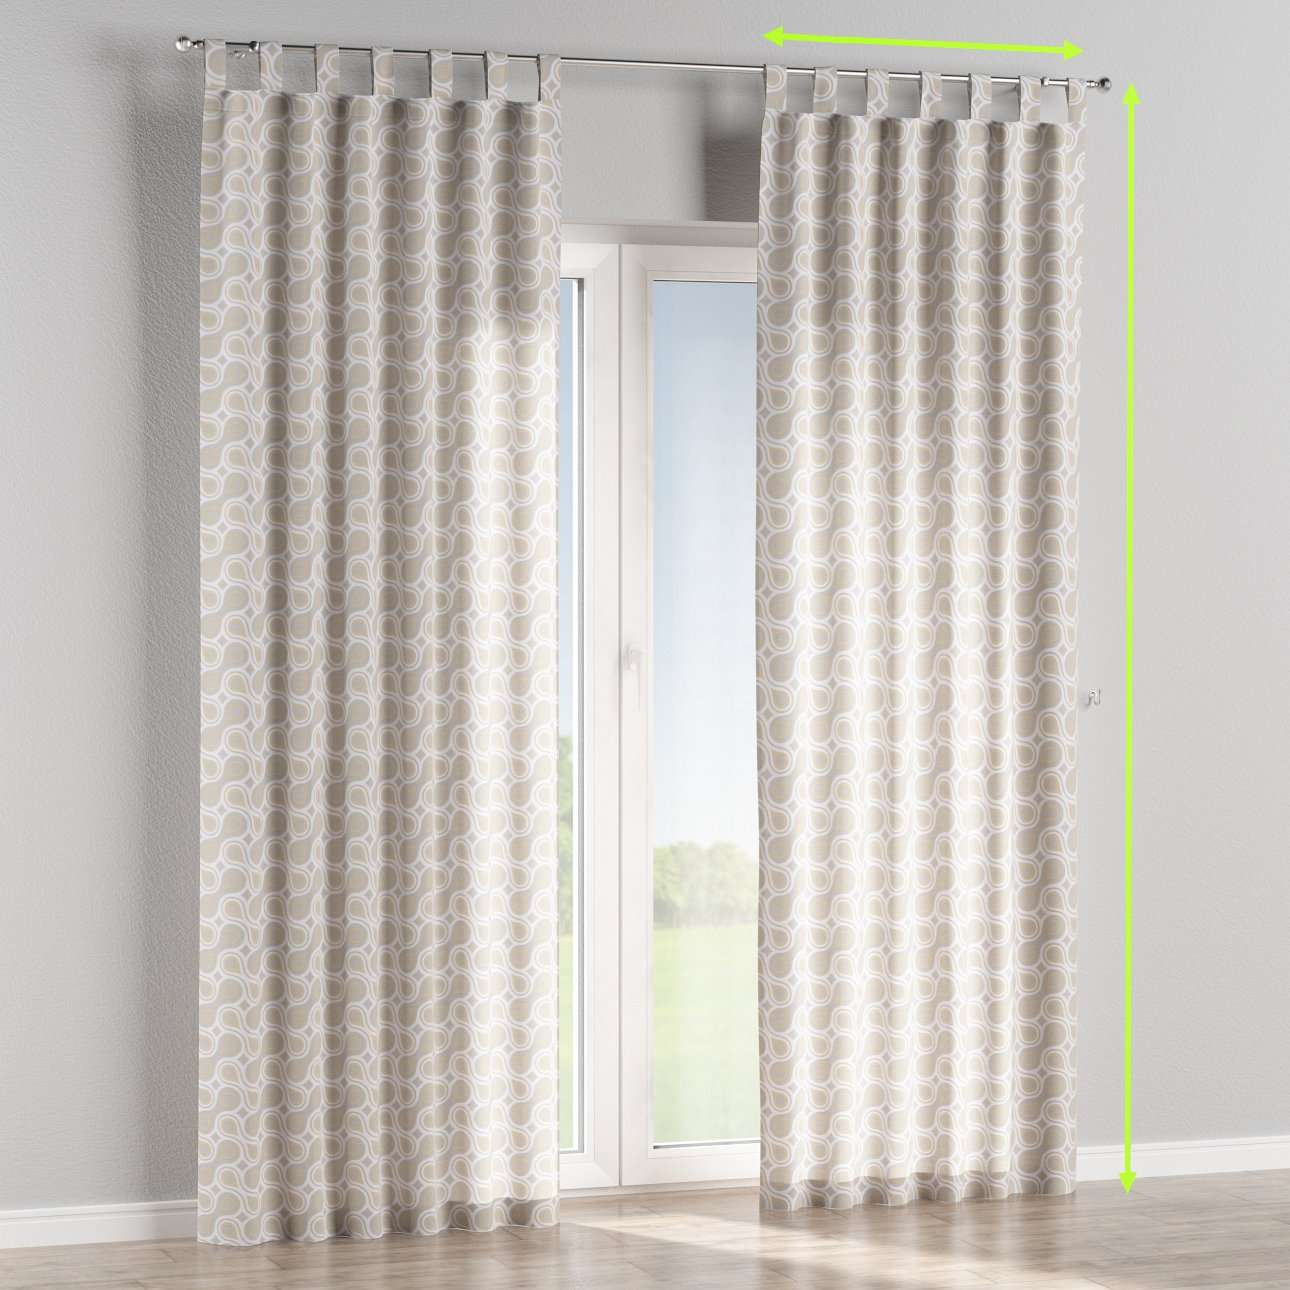 Tab top curtains in collection Flowers, fabric: 311-11